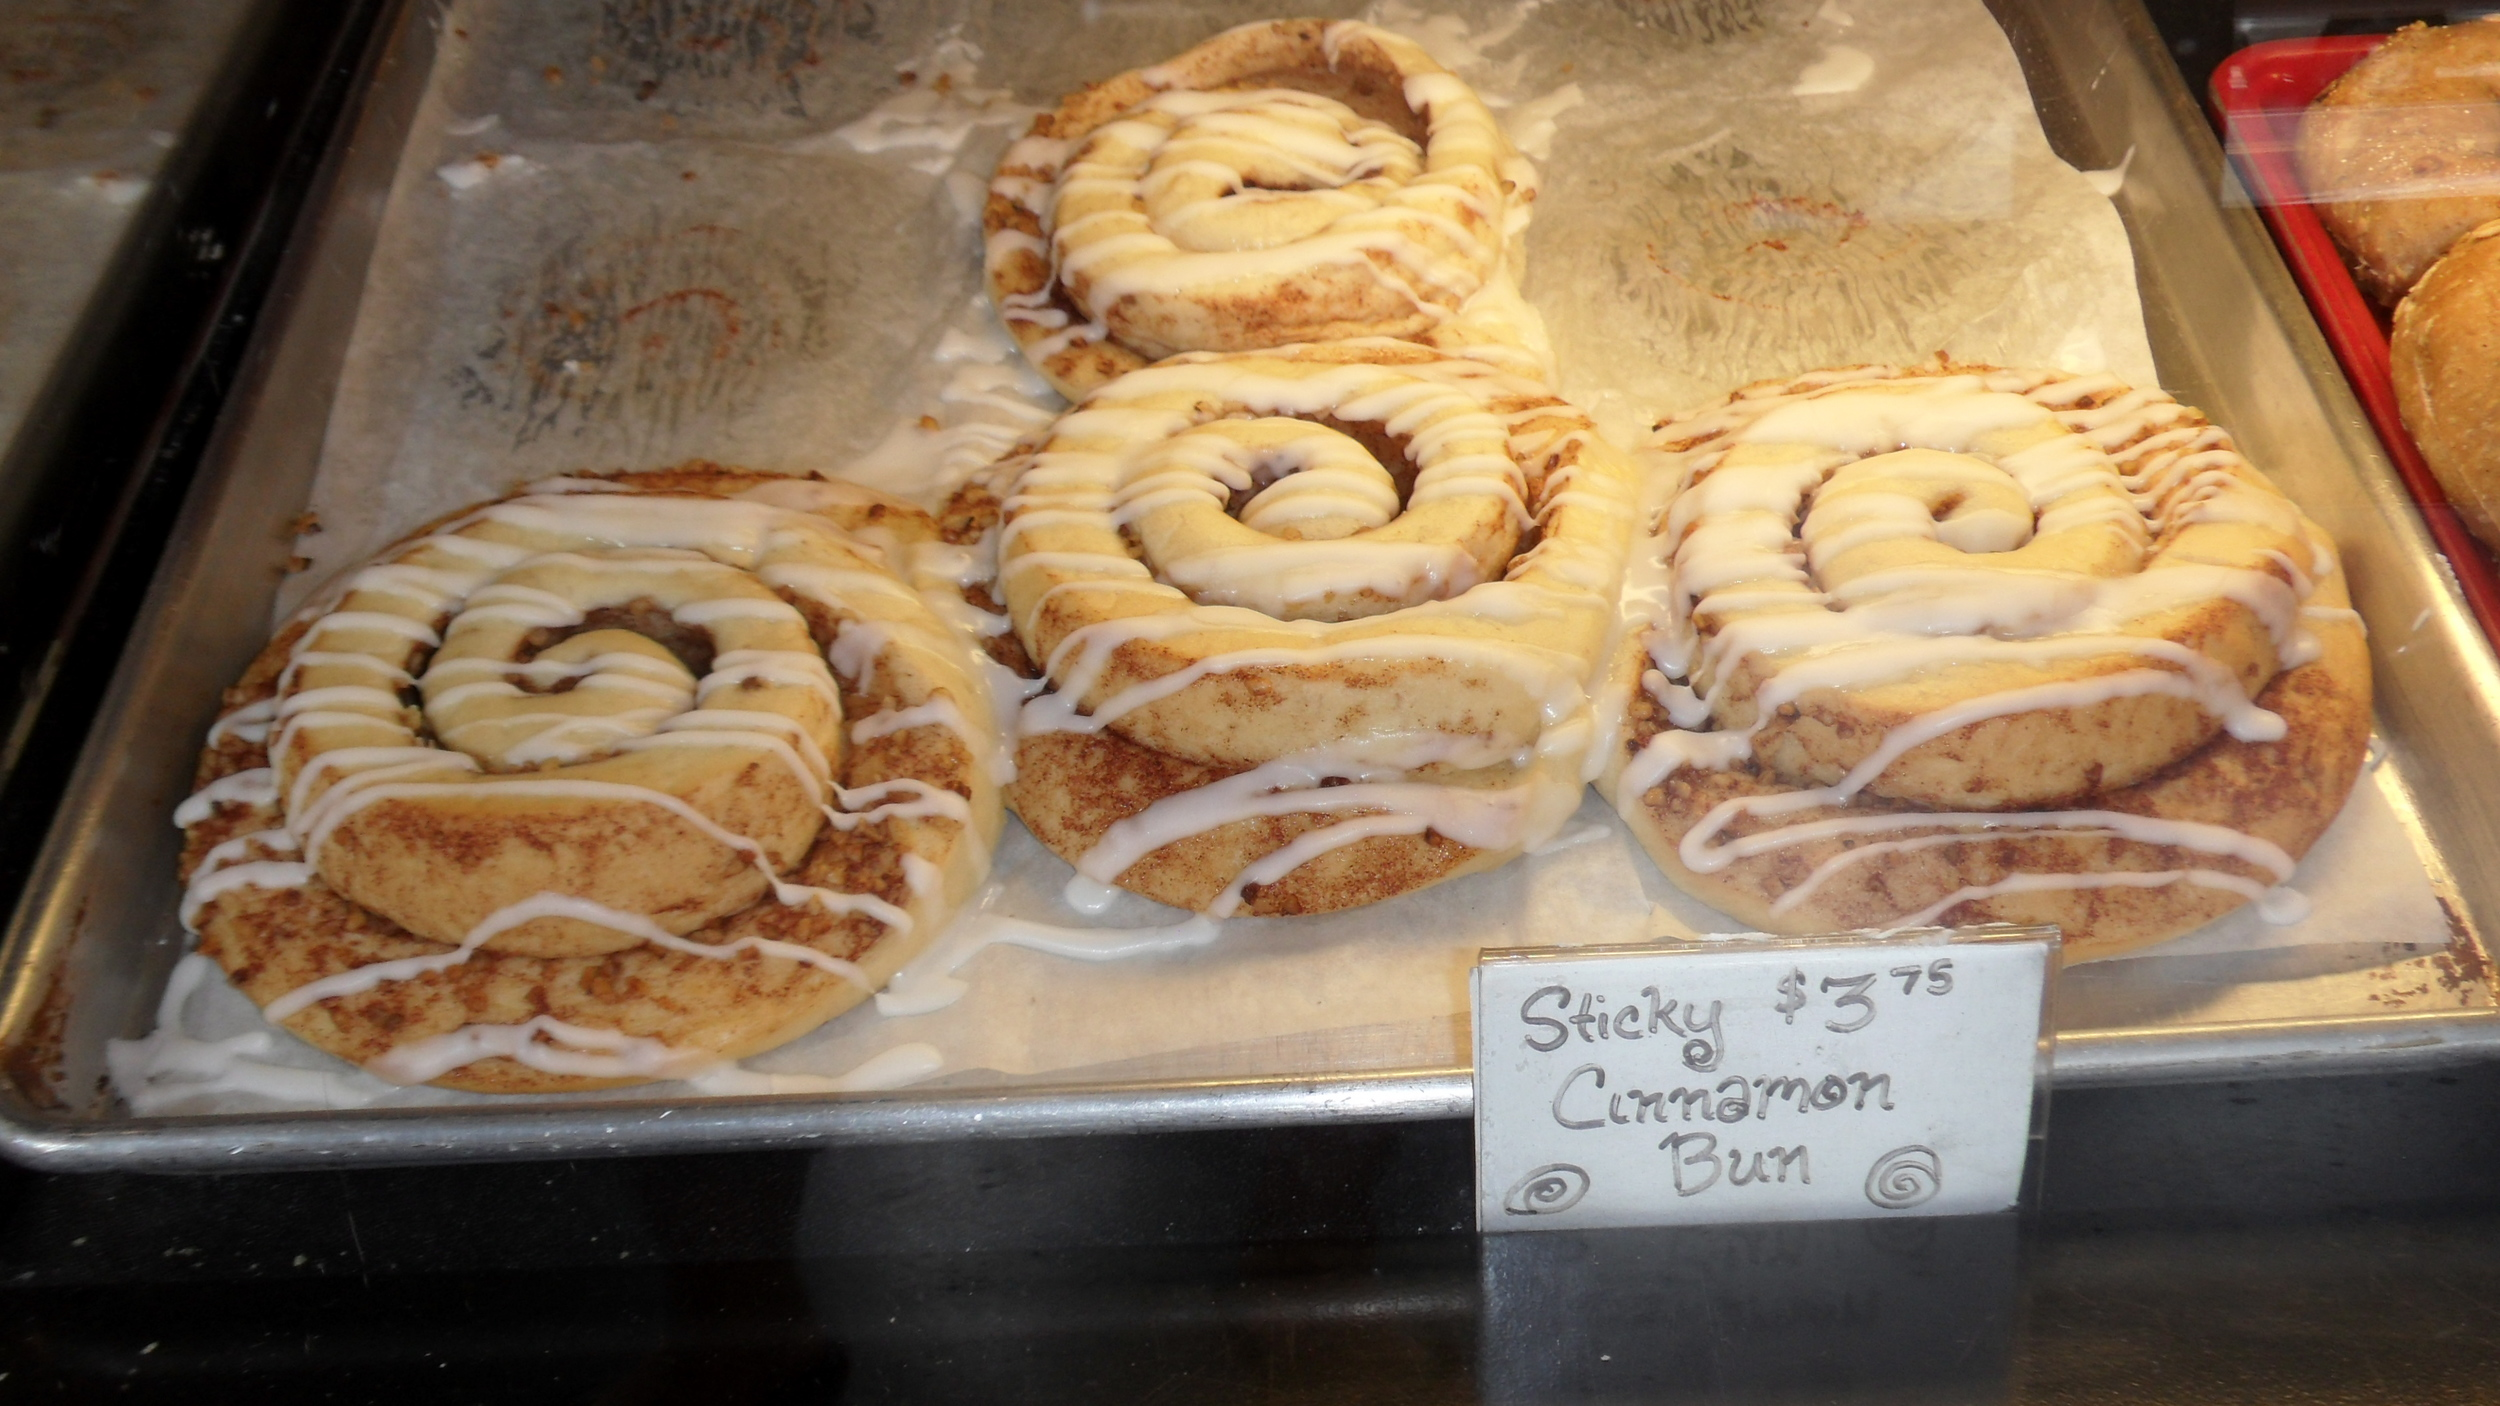 Cinnamon buns are one of the harder things to make vegan, but these were scrumptious!